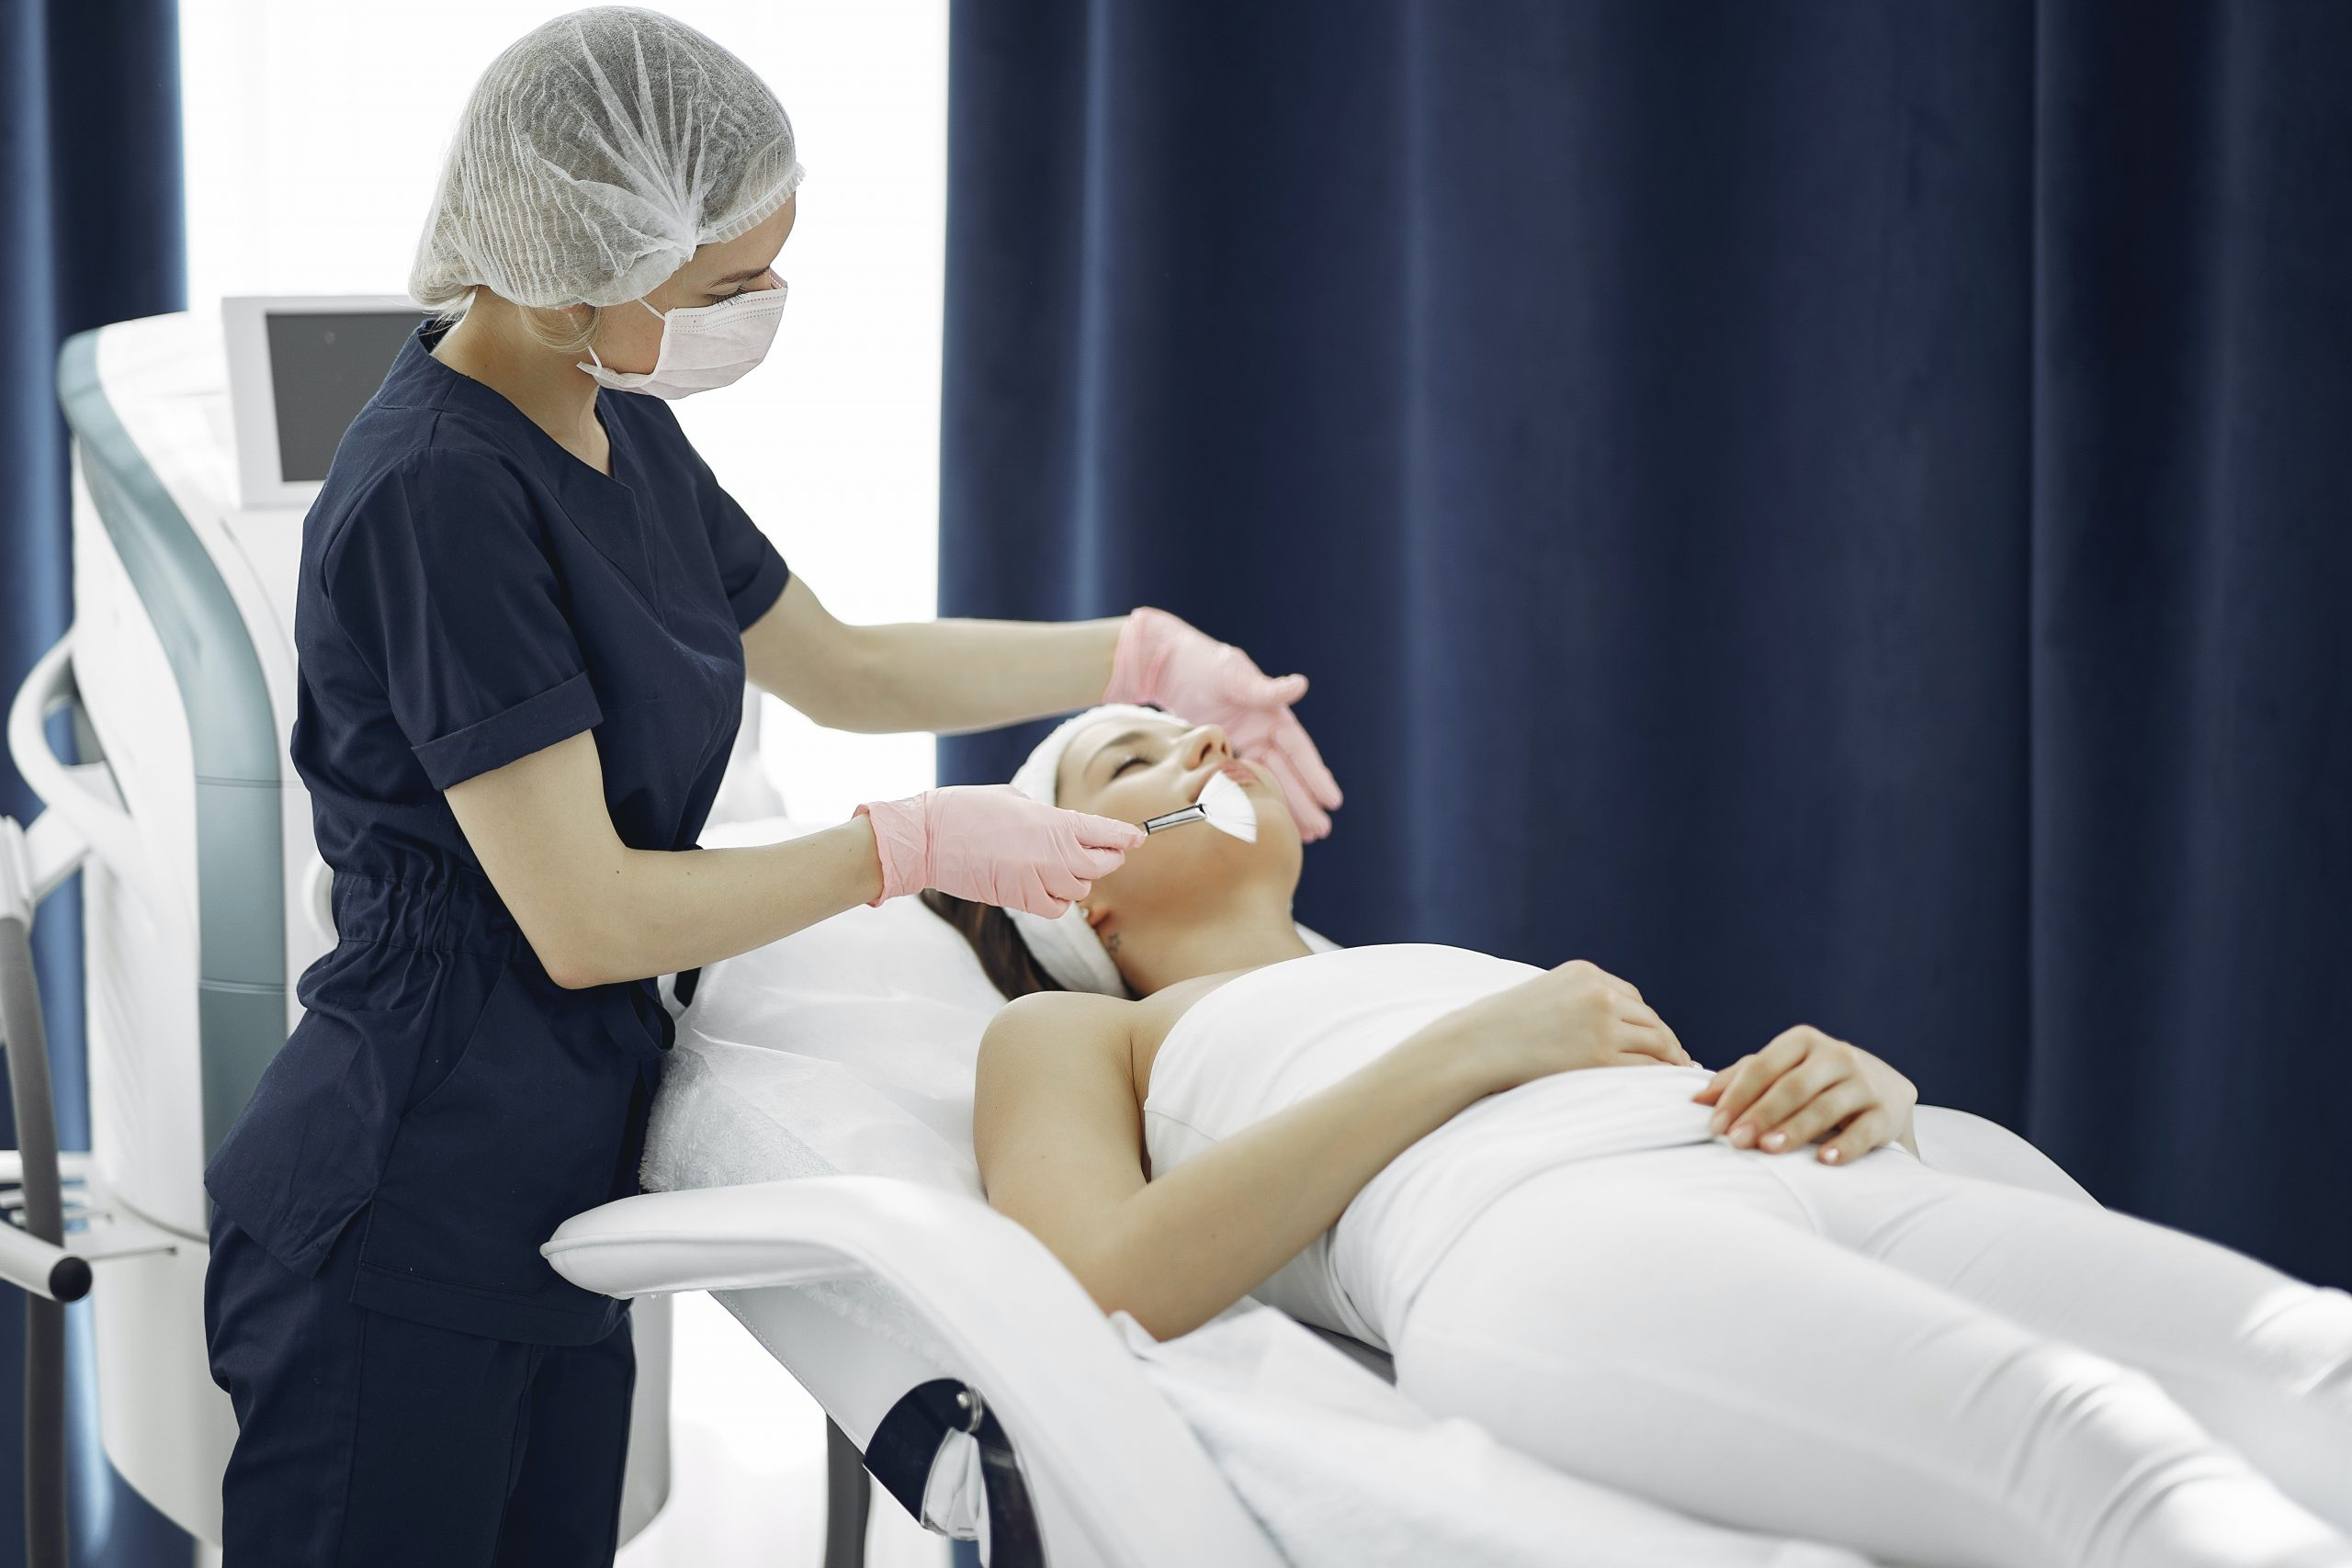 woman lying on surgical bed, mid-procedure, dermal fillers